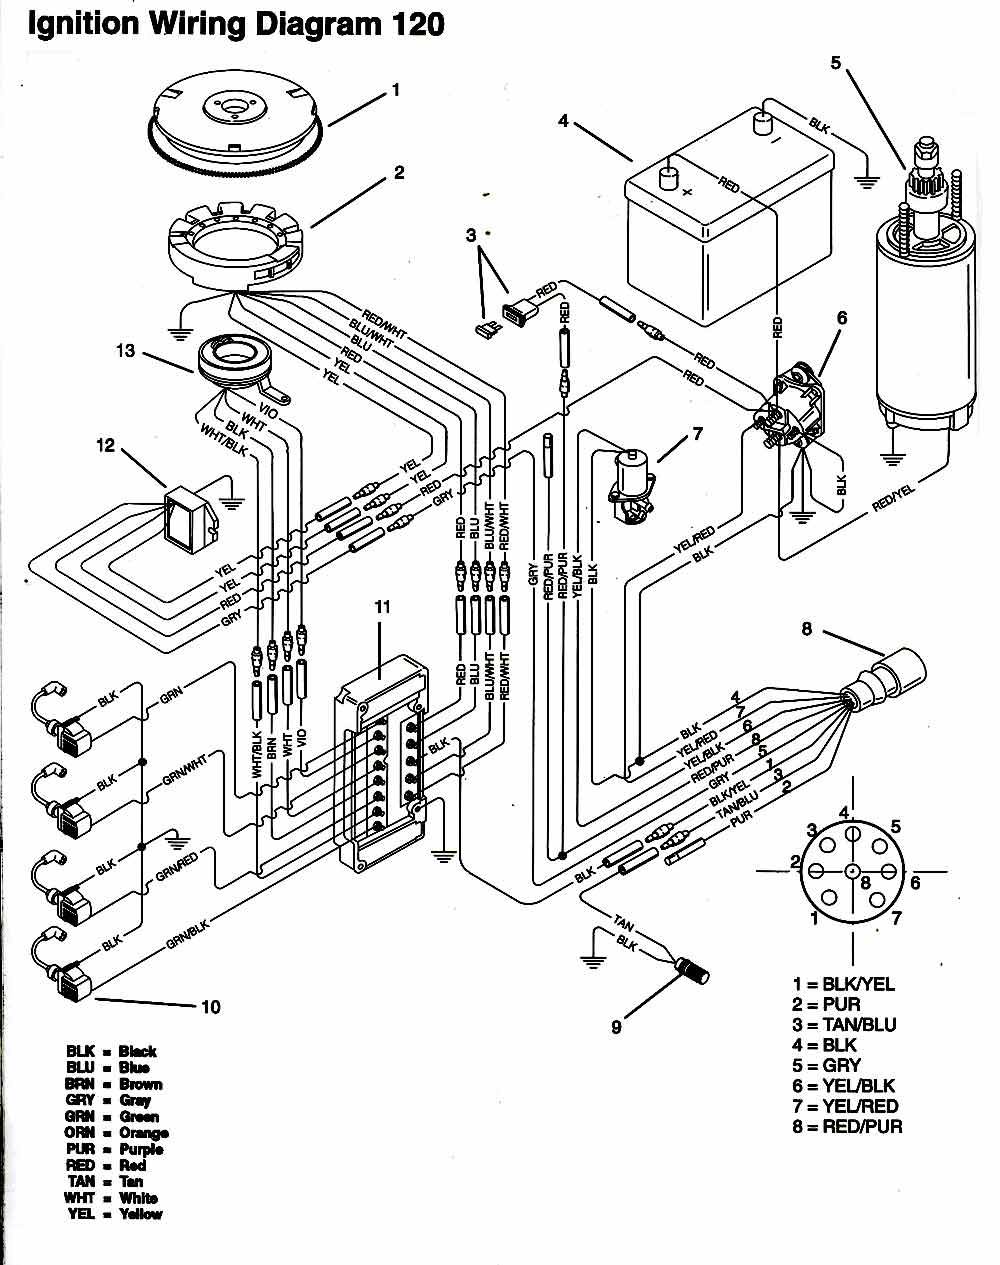 7 5 Hp Mercury Outboard Wiring Diagram - Great Installation Of ...  Hp Stroke Mercury Outboard Wiring Diagram on 90 hp mariner outboard, 90 hp johnson wiring diagram, 90 hp force outboard motor, mercury outboard ignition switch wiring diagram, 90 hp force outboard diagram, 90 hp mercury outboard engine, 9.9 mercury outboard parts diagram, 90 hp 4 stroke mercury lower unit diagram, outboard engine wiring diagram, mercury 500 outboard wiring diagram, mercury mariner wiring diagram, yamaha outboard wiring diagram, mercury 70 hp wiring diagram, 1997 mercury outboard wiring diagram, mercury outboard tach wiring diagram, johnson outboard tilt trim wiring diagram, 90 hp mercury outboard flywheel, 1988 mercury outboard wiring diagram, mercury outboard control wiring diagram, 1985 mercury outboard wiring diagram,